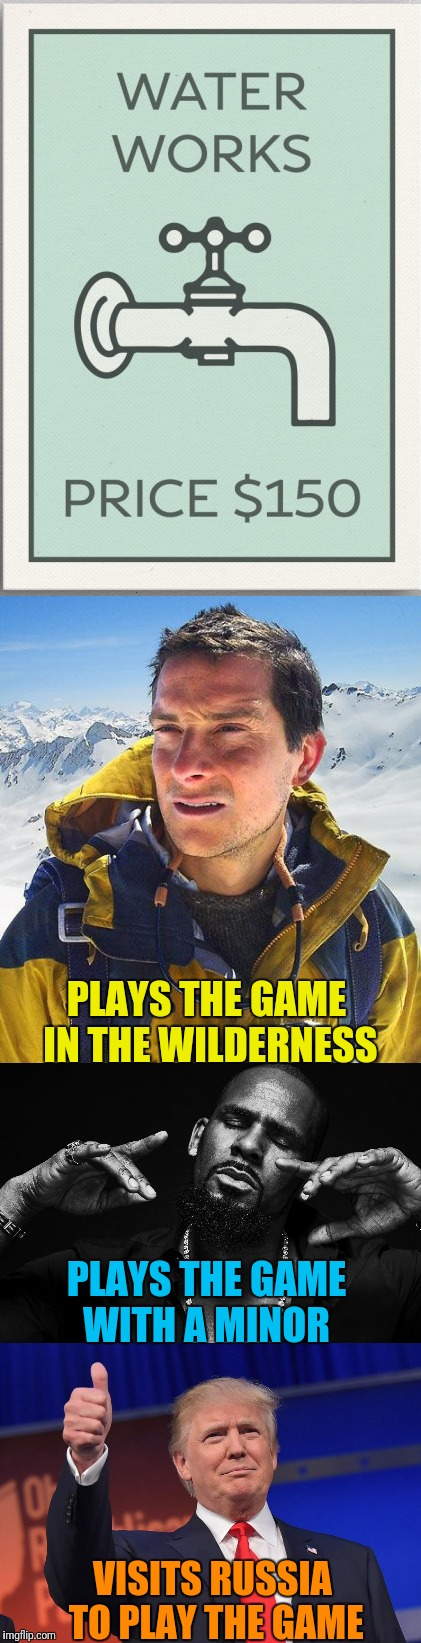 Monopolys Number 1 | PLAYS THE GAME IN THE WILDERNESS PLAYS THE GAME WITH A MINOR VISITS RUSSIA TO PLAY THE GAME | image tagged in bear grylls,r kelly,donald trump 1,piss on you,water,works | made w/ Imgflip meme maker